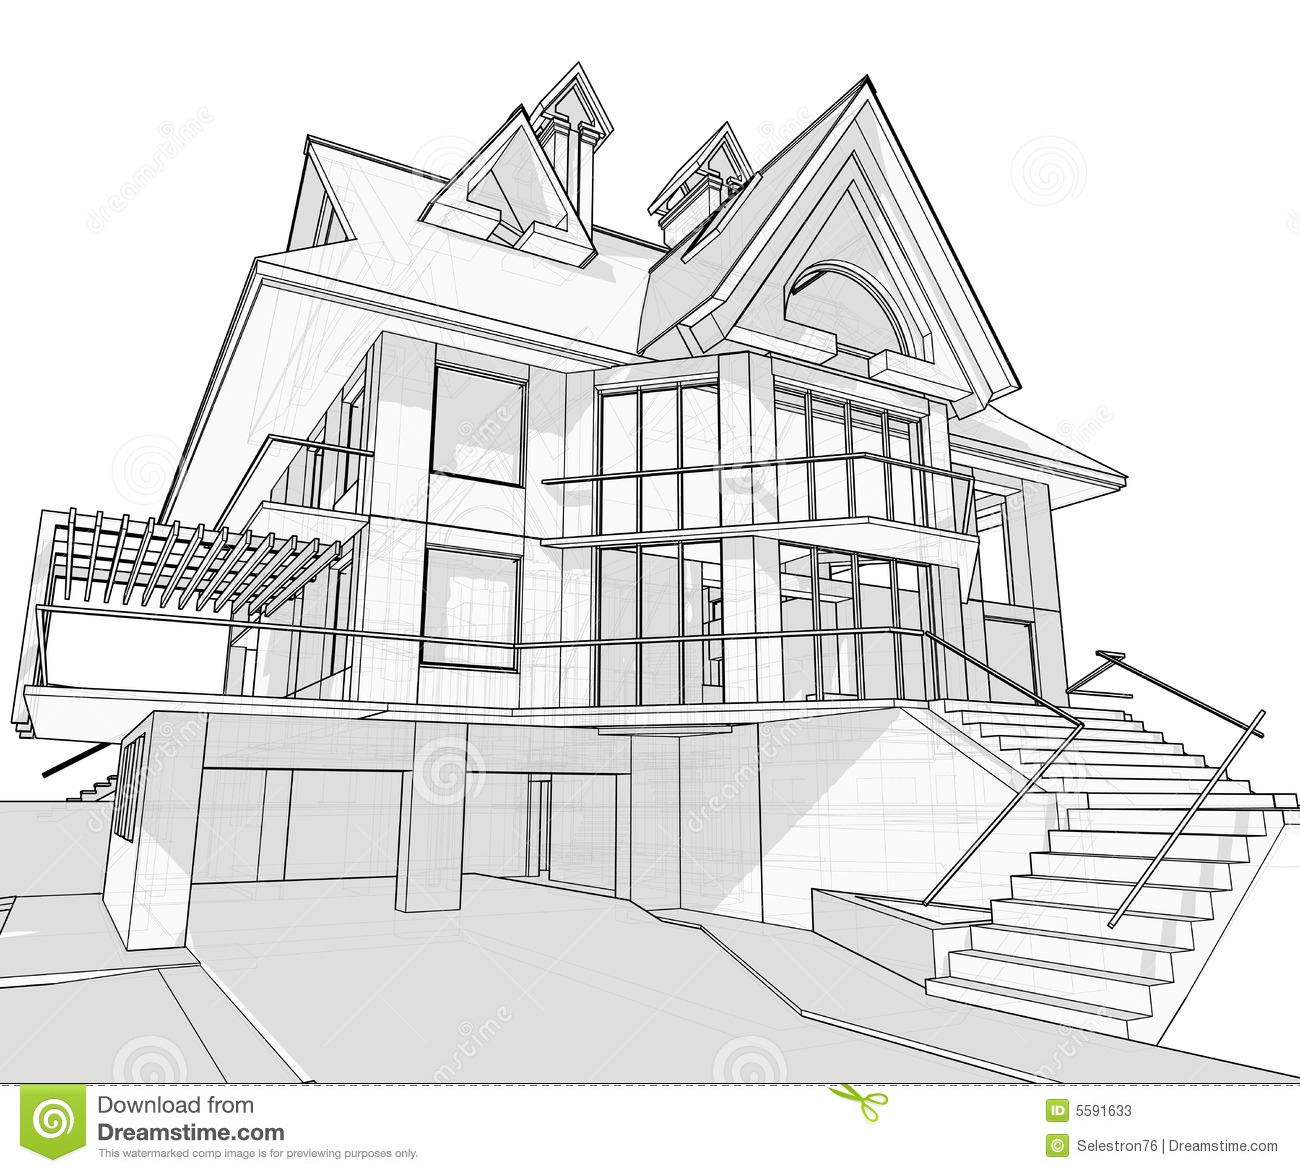 House Architecture Blueprint Stock Vector Illustration